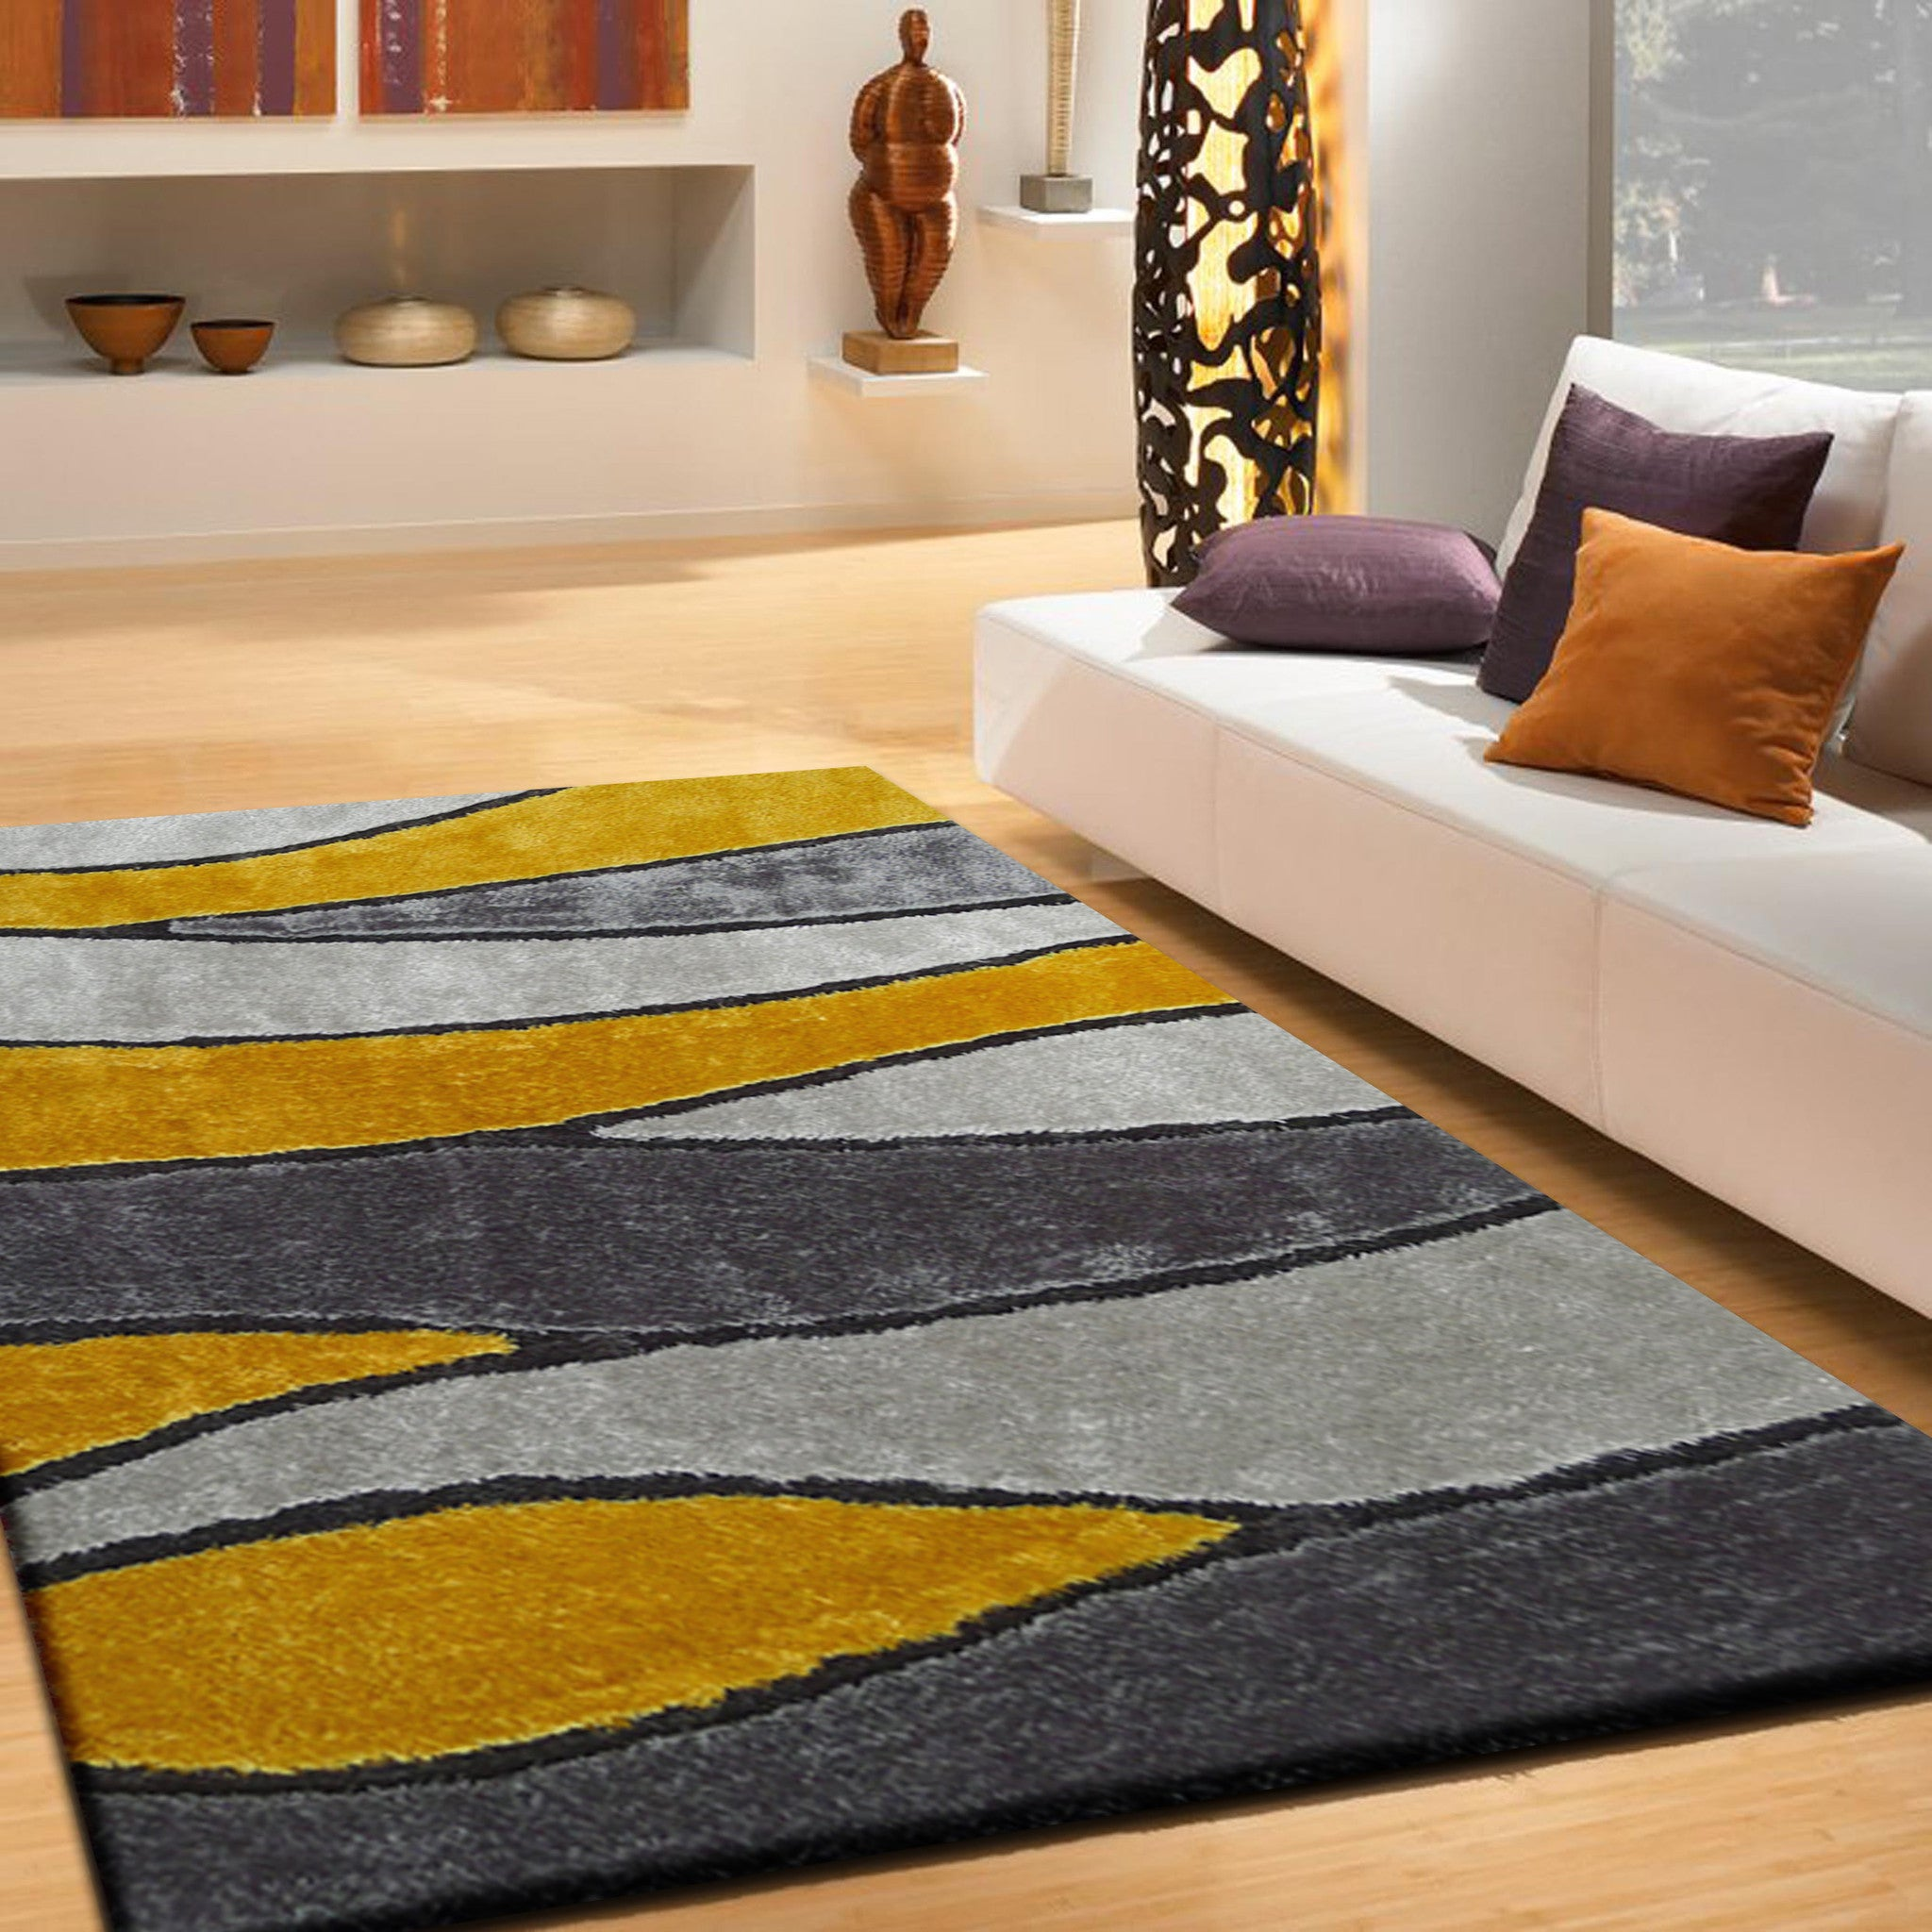 area products mc ruglots geometric gold and rugs triangle grey rug isometry com runner modern yellow